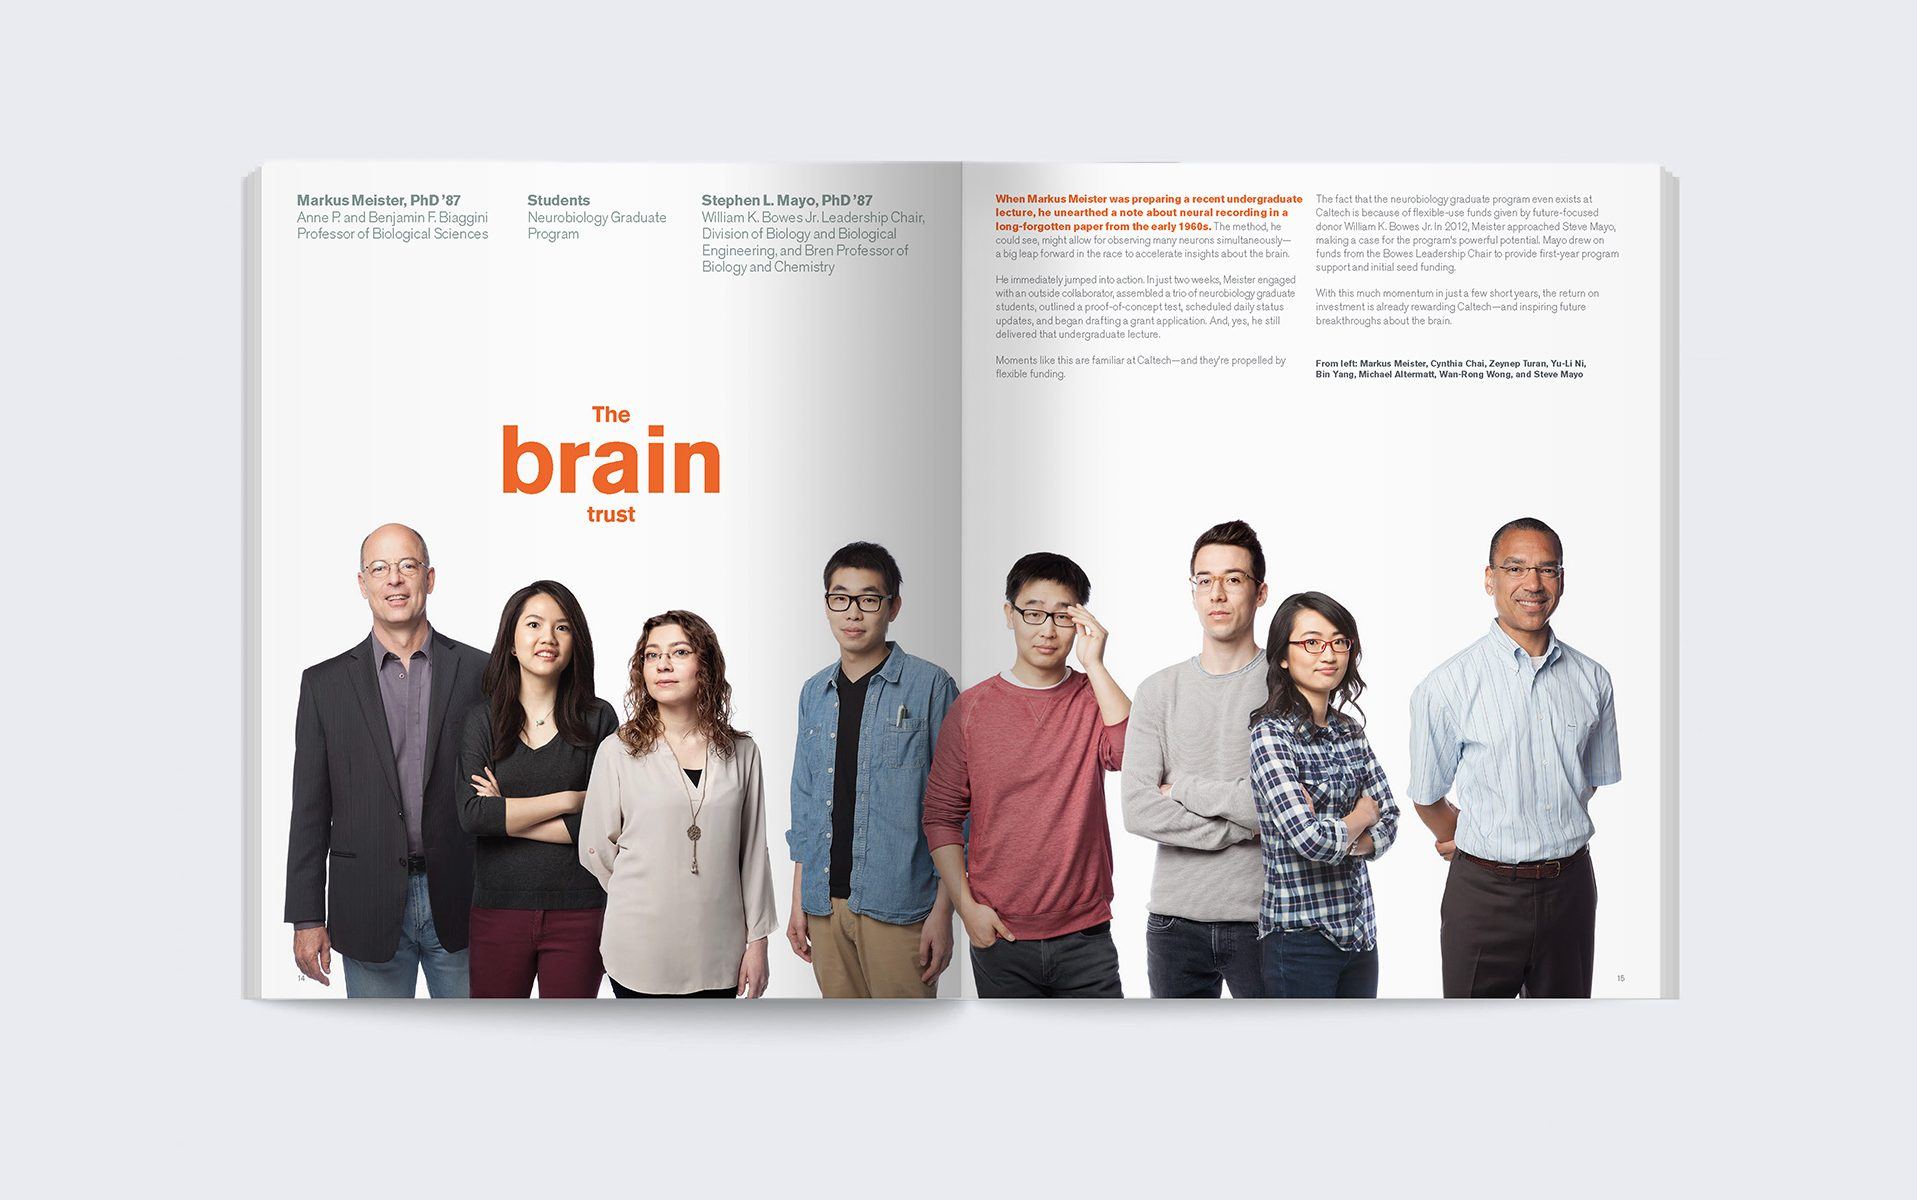 The brain trust. Photo of a multi-ethnic, age varied group of women and men scientists.